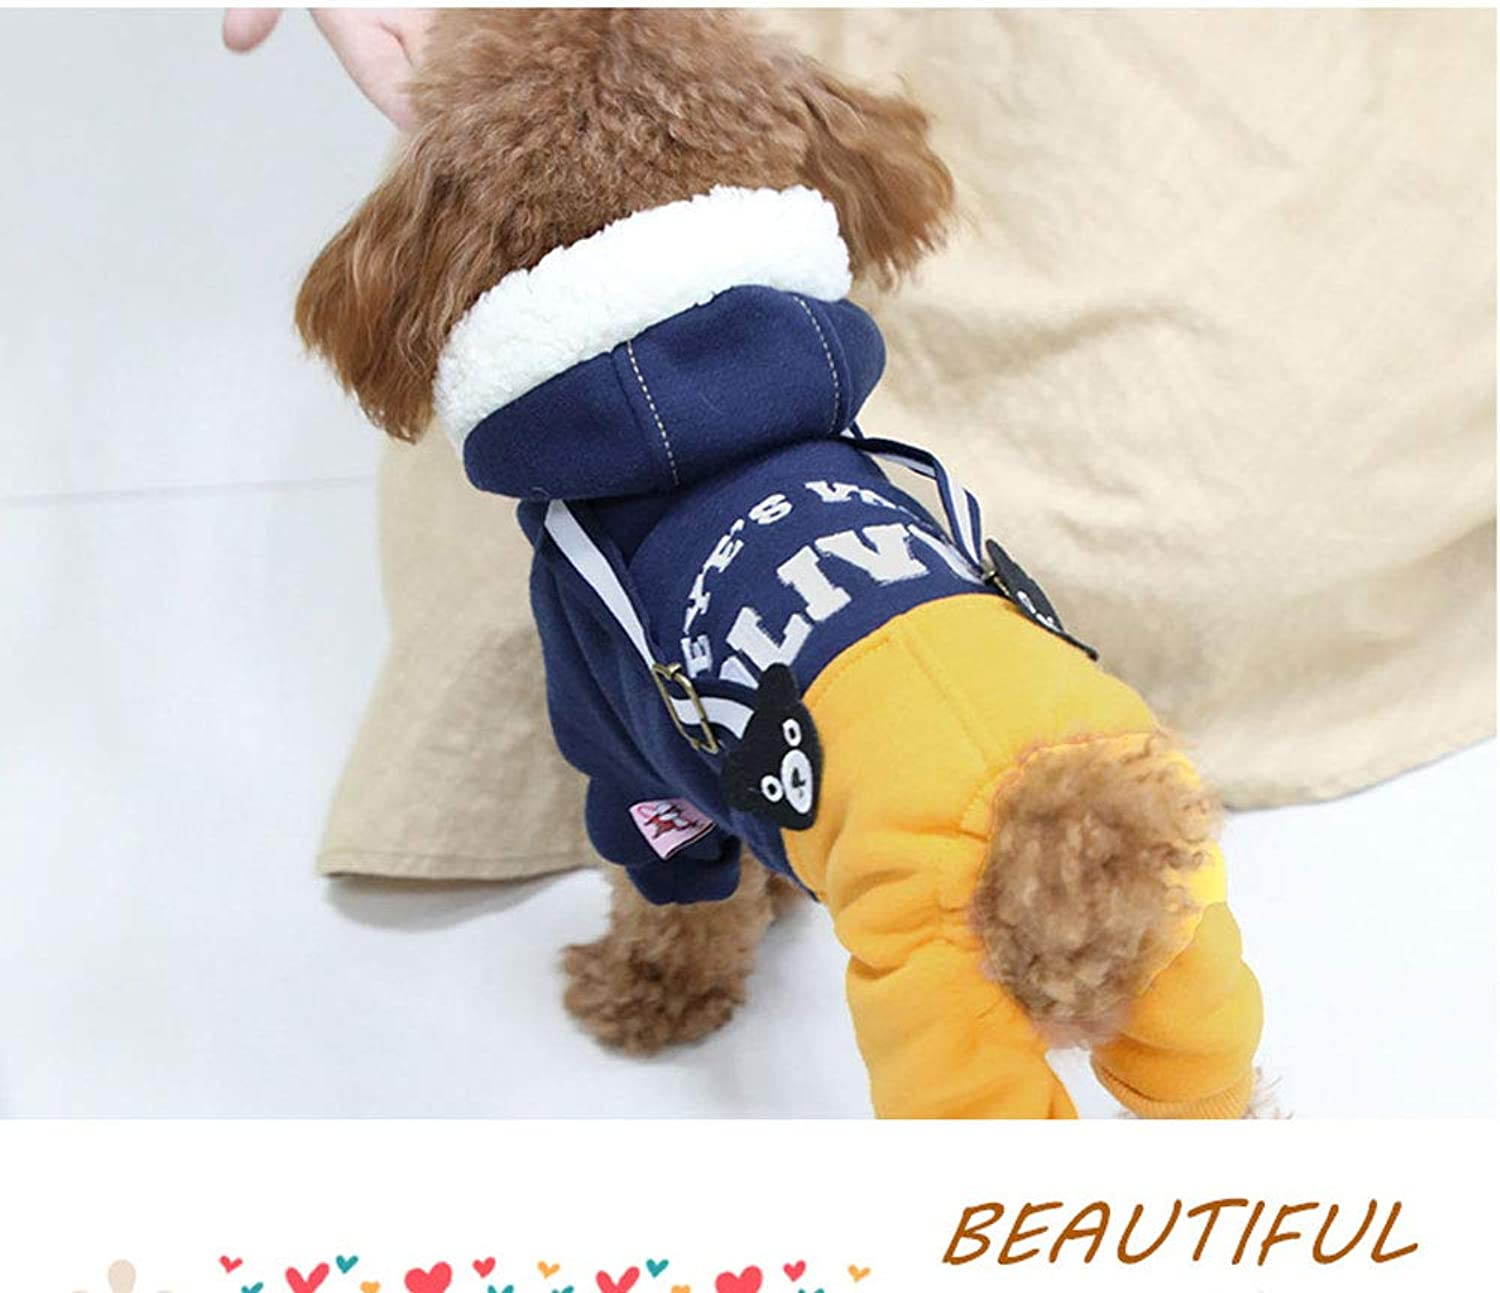 HONGNA Autumn and winter clothing new dog bib pet clothes Teddy small dog fourlegged clothes,bluee,L